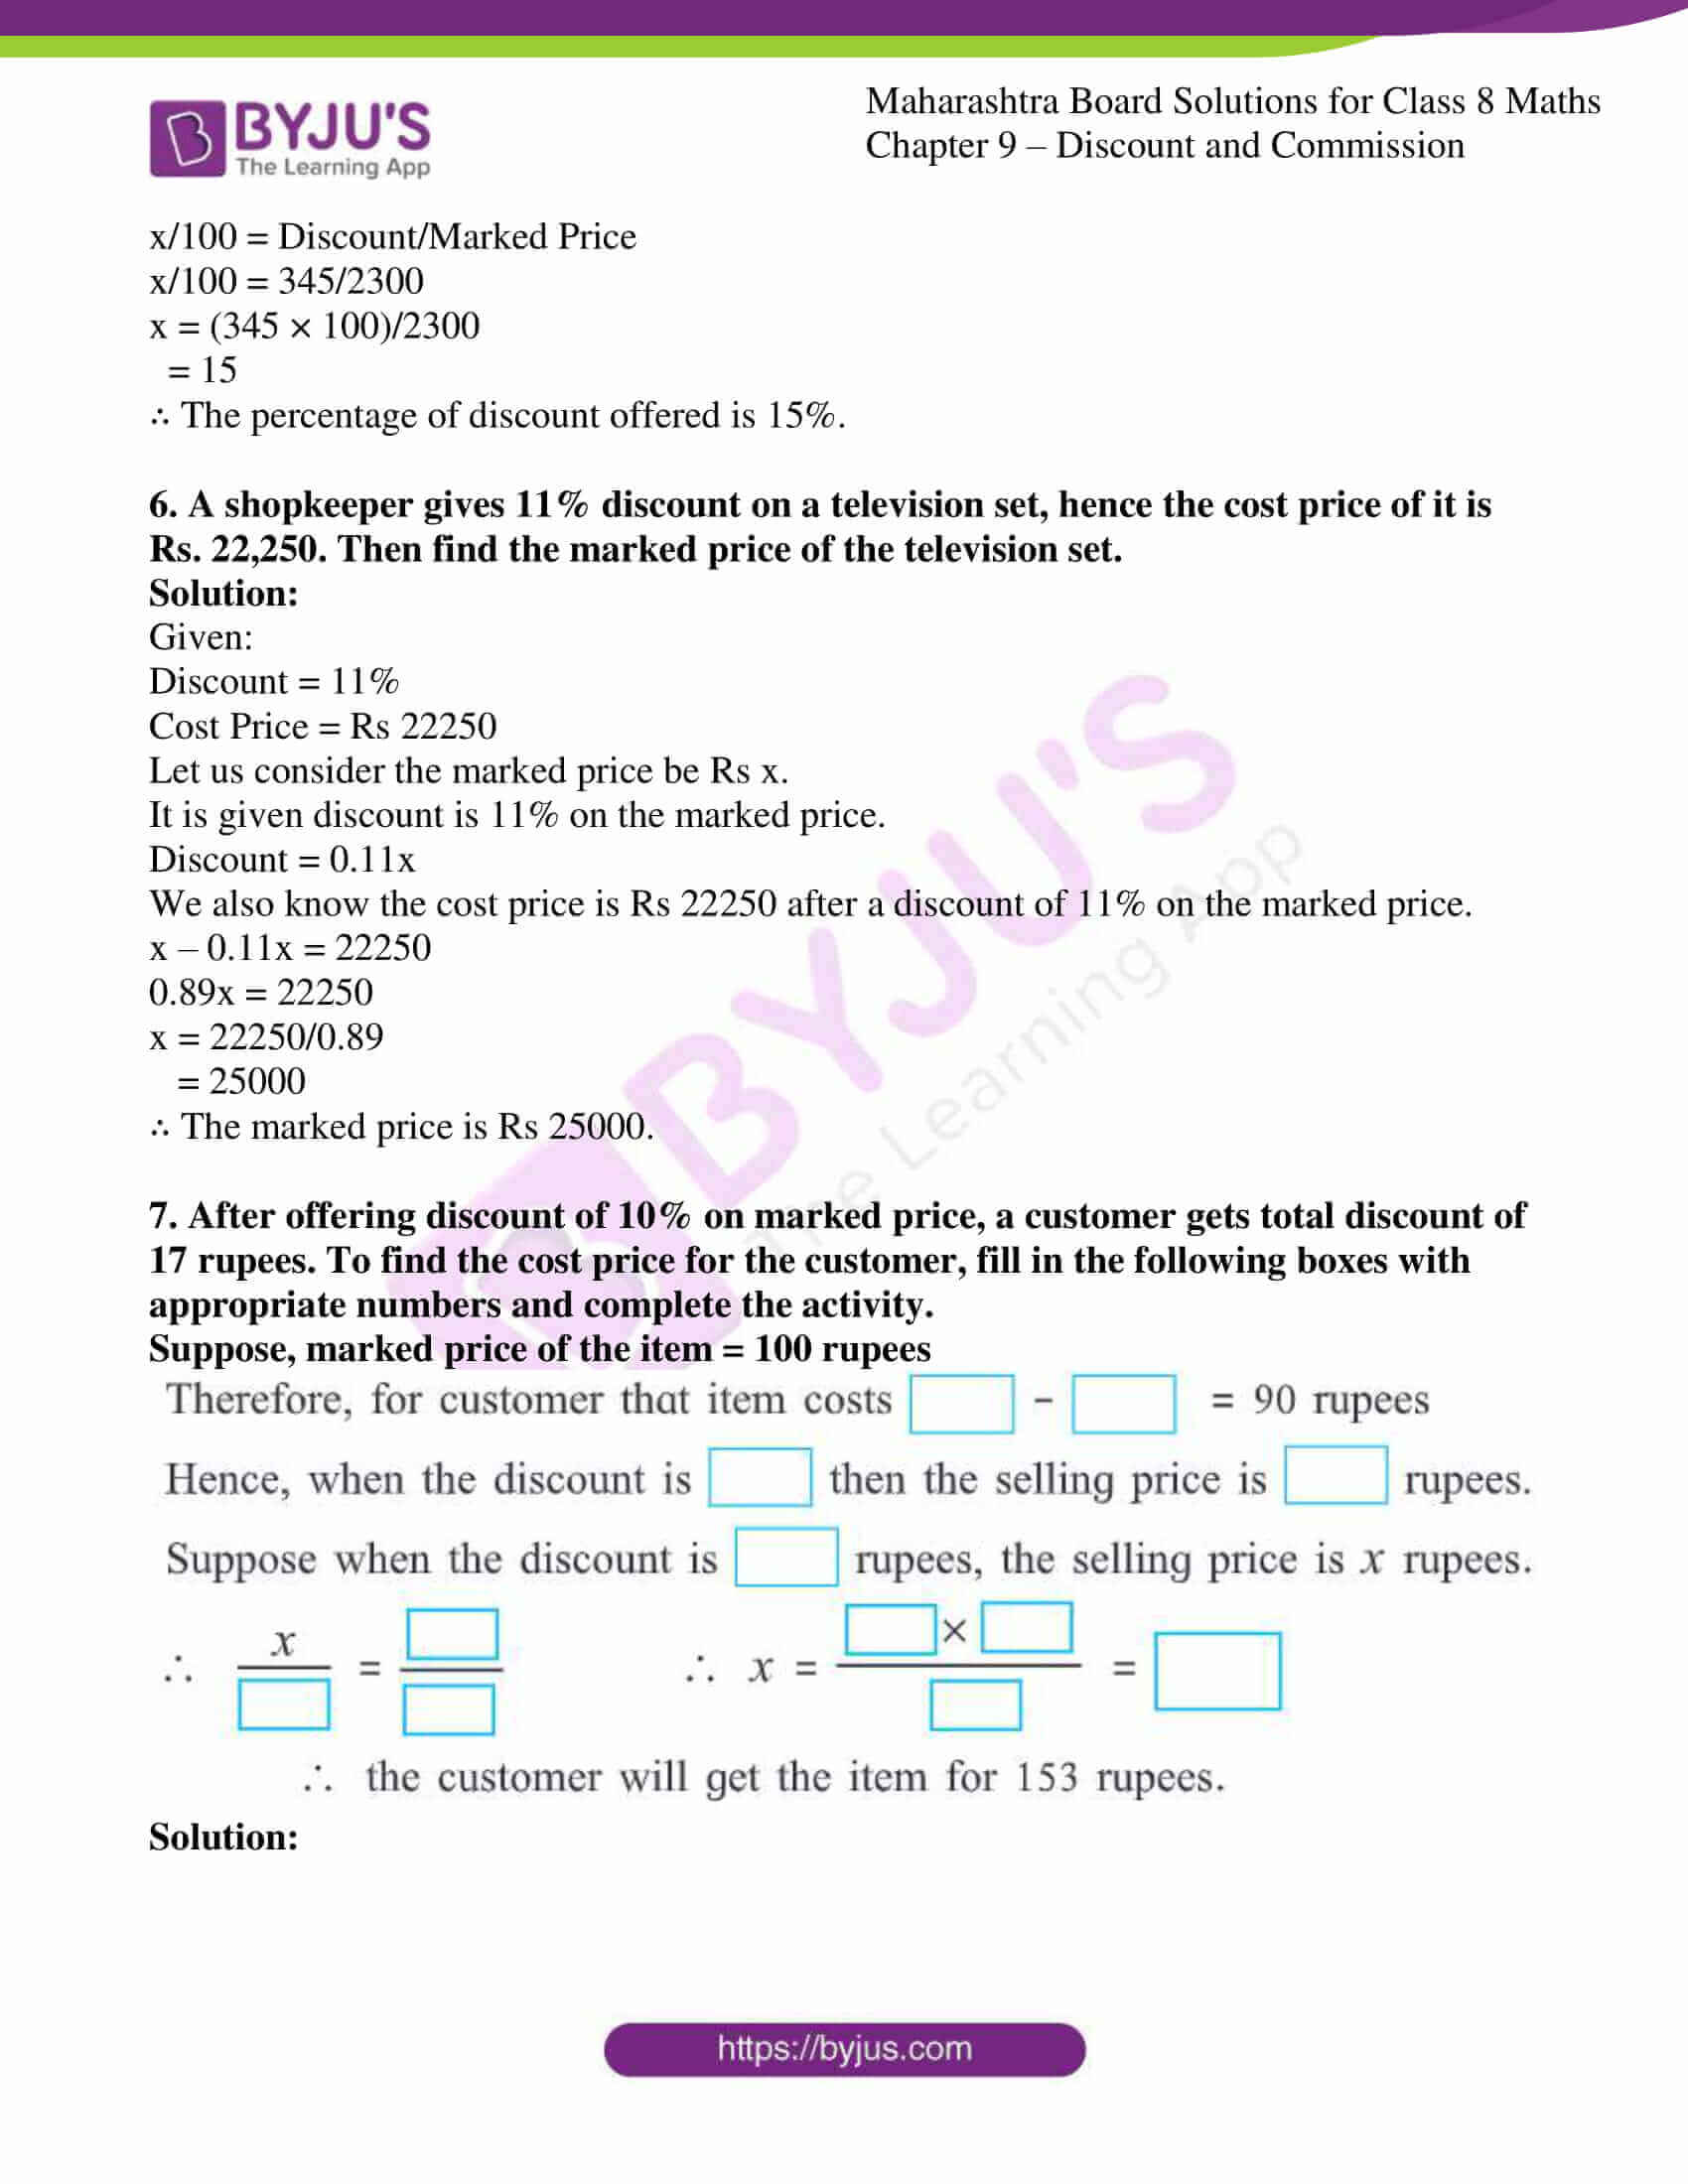 msbshse sol for class 8 maths chapter 9 3